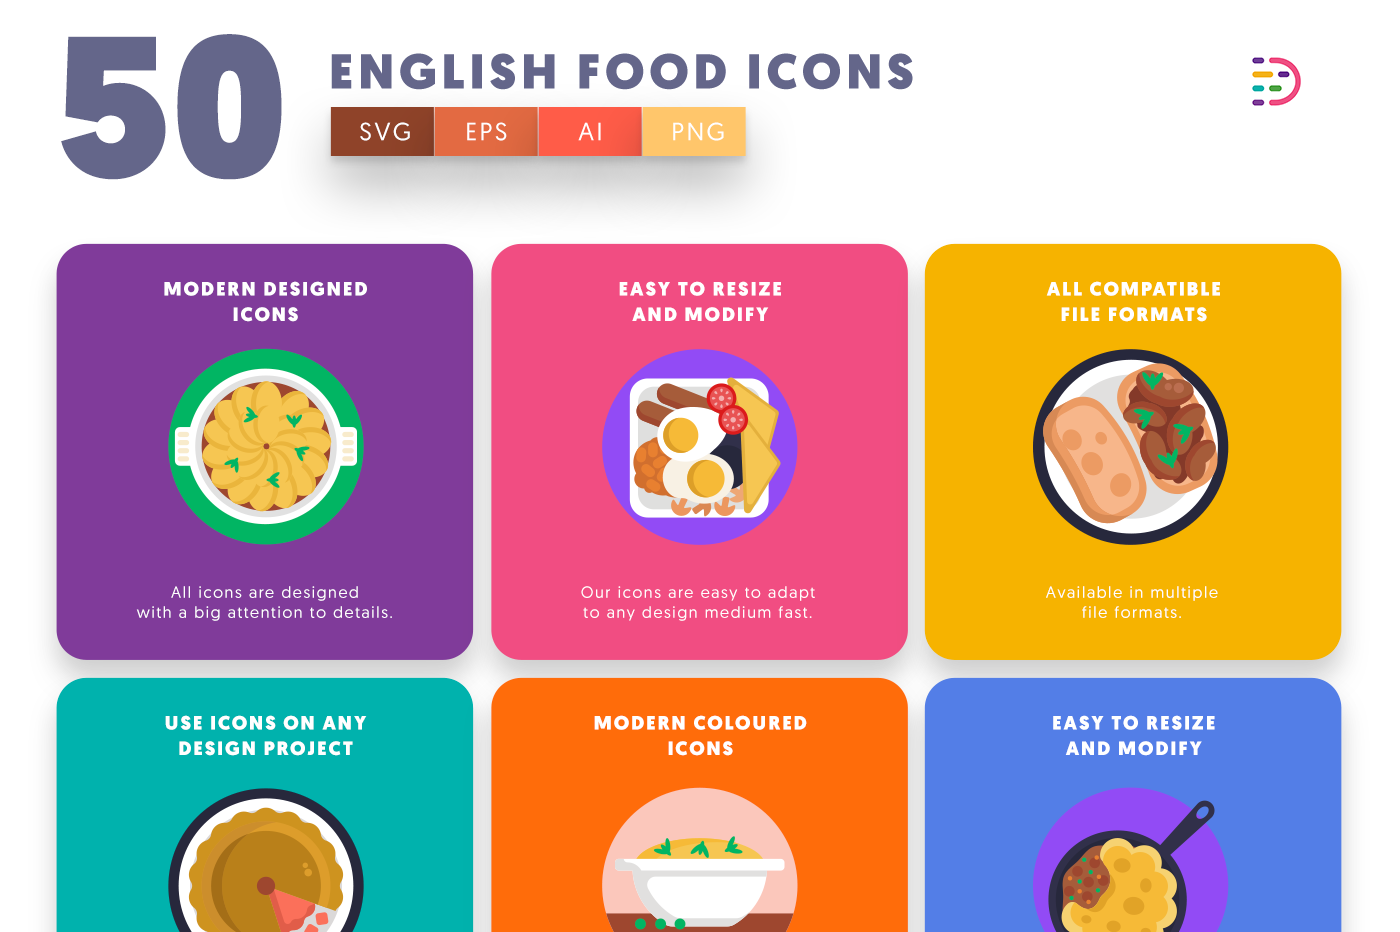 50 English Food Icons with colored backgrounds